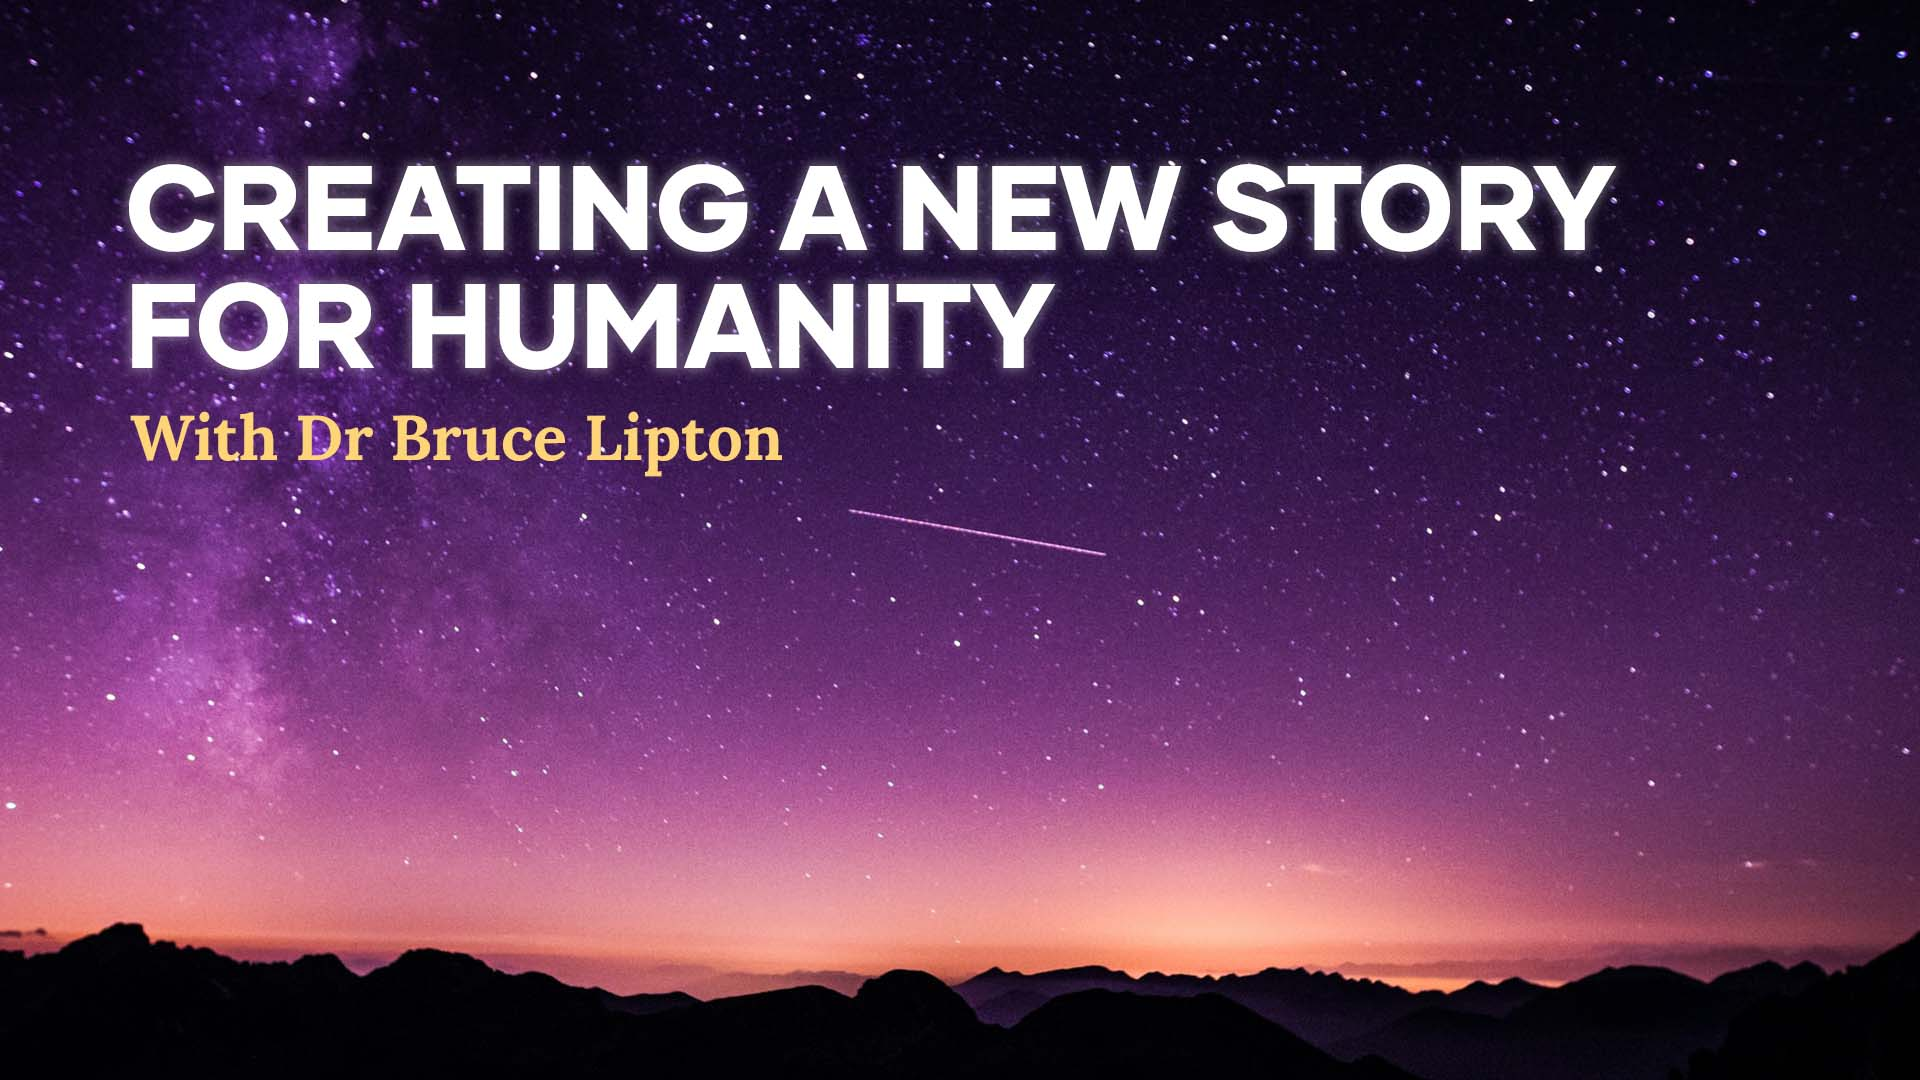 New Story for Humanity